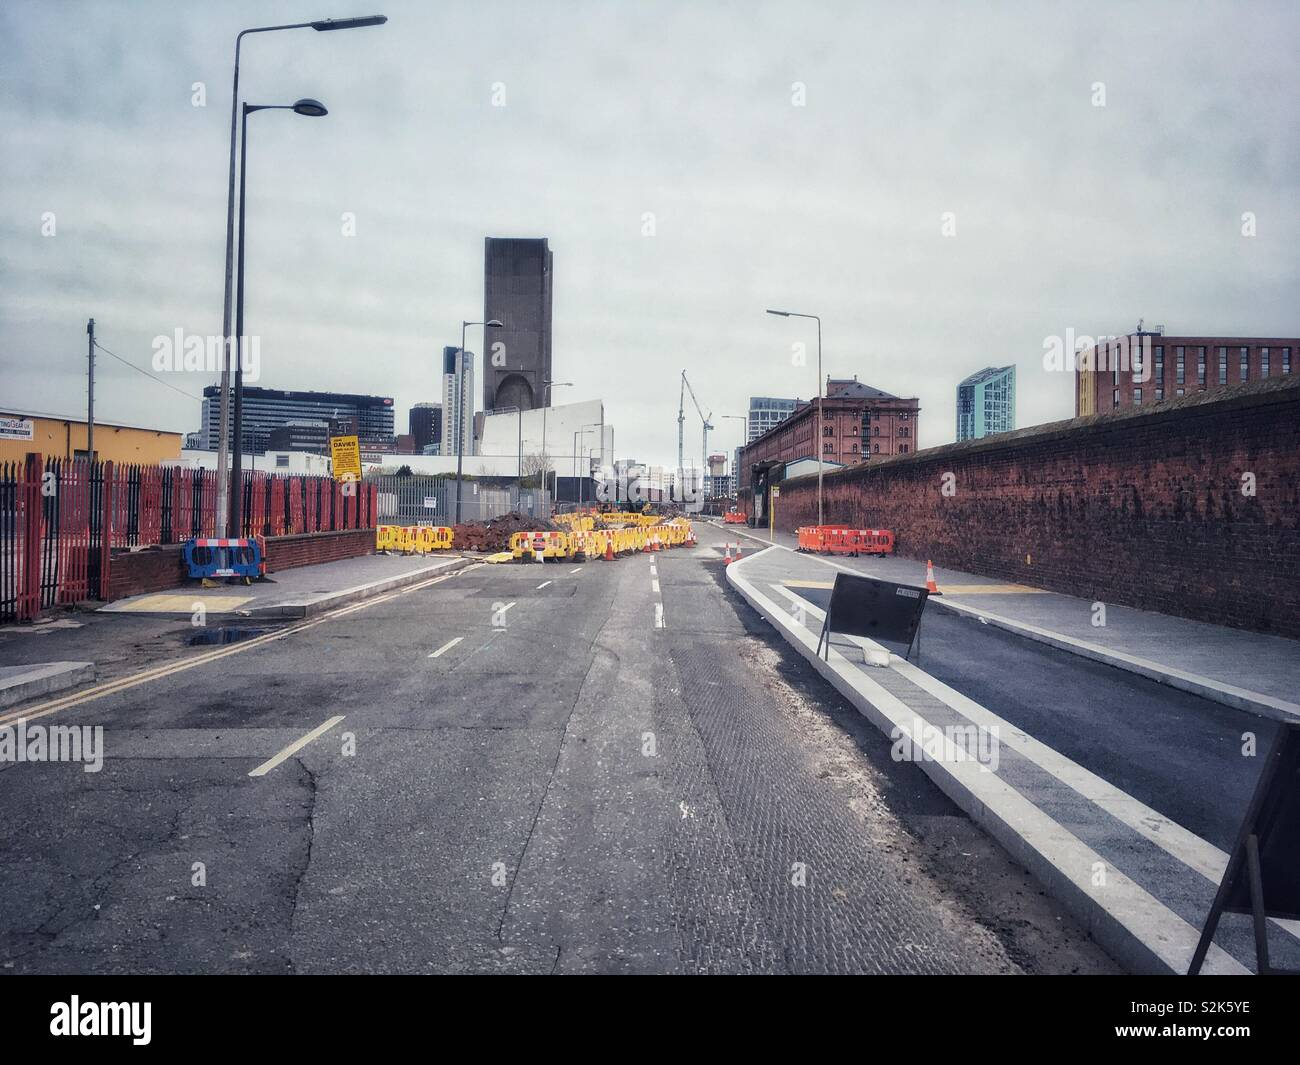 Waterloo rd liverpool during road works deserted - Stock Image